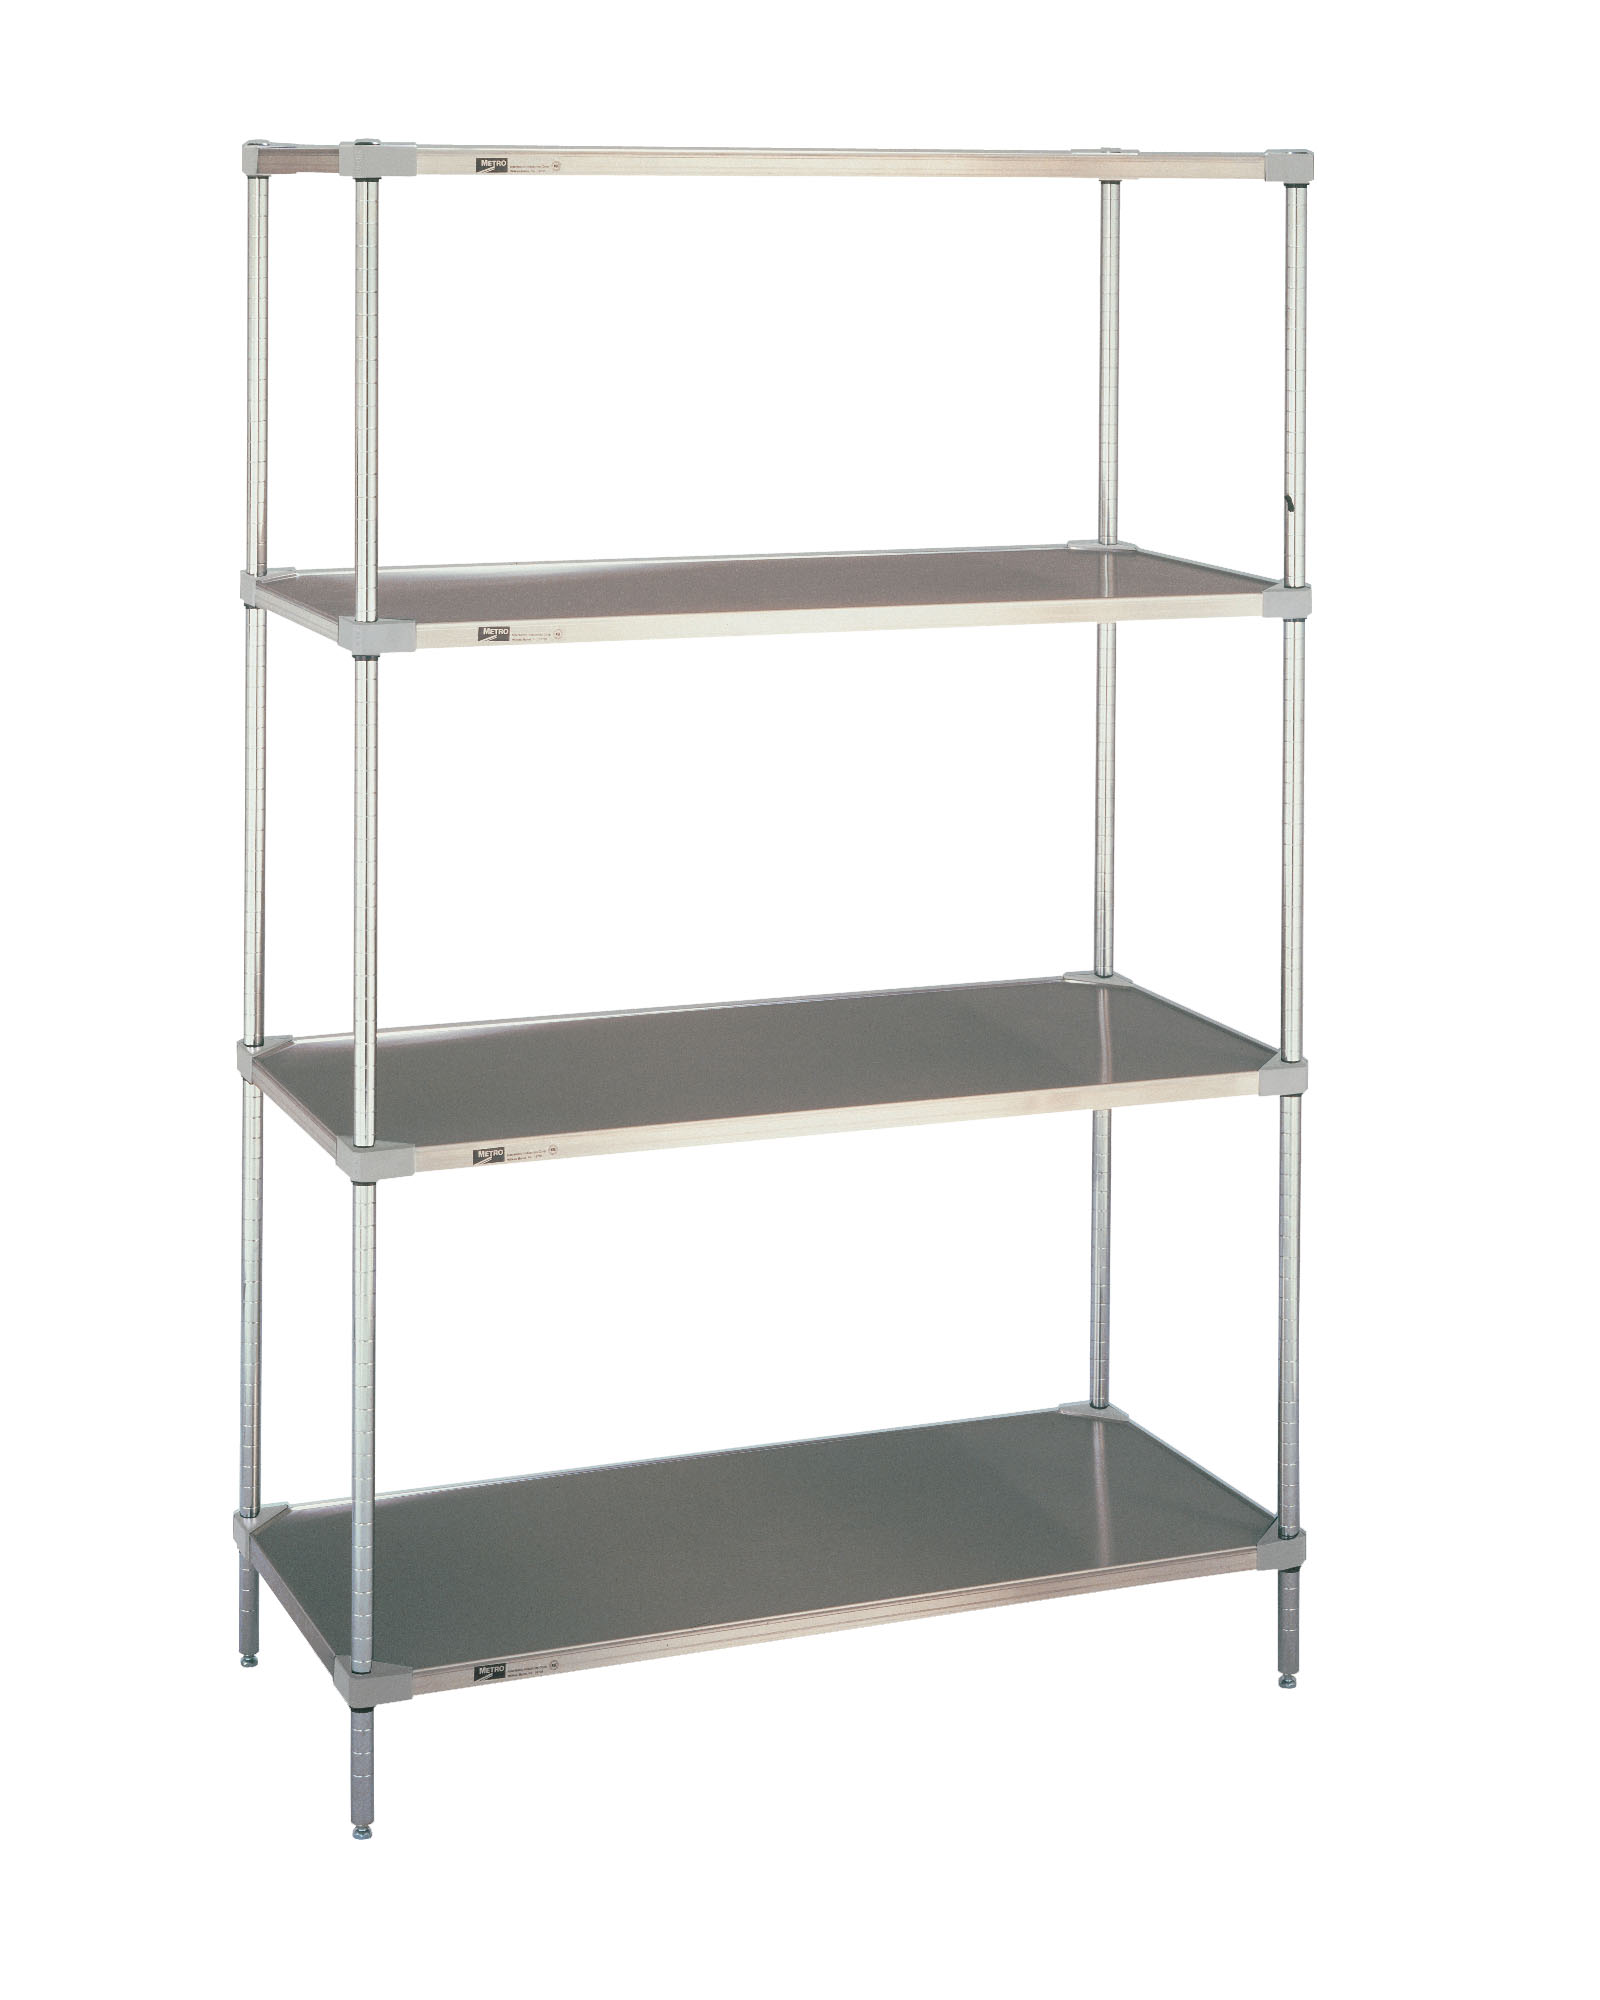 Stainless Steel Shelves Metal Shelvings Cheap Boltless Rivet Shelving With Wire Deck With